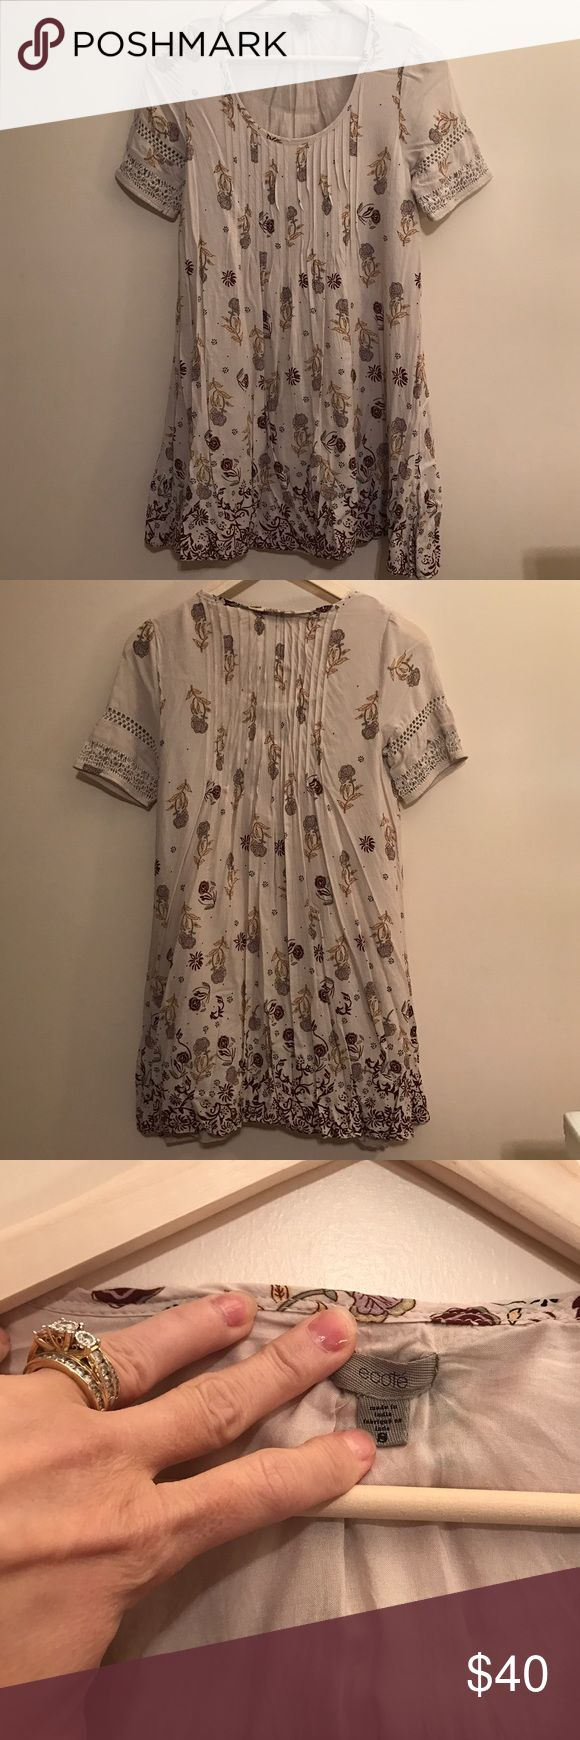 Ecote Dress/Tunic-UO-EUC-Size Small Ecote Dress/Tunic-UO-EUC-Size Small. This dress could be worn as a dress or tunic. It's fully lined and incredibly comfortable. The color is hard for me to describe. In my opinion it is Ecru/Brown BUT my husband says it's light gray/brown. Either way, the dress is darling! I only wore it twice and hand washed, laid flat to dry. IMO this is a dress for all seasons. Perfect with wedges, sandals or leggings and boots! Offers welcome through the offer button…